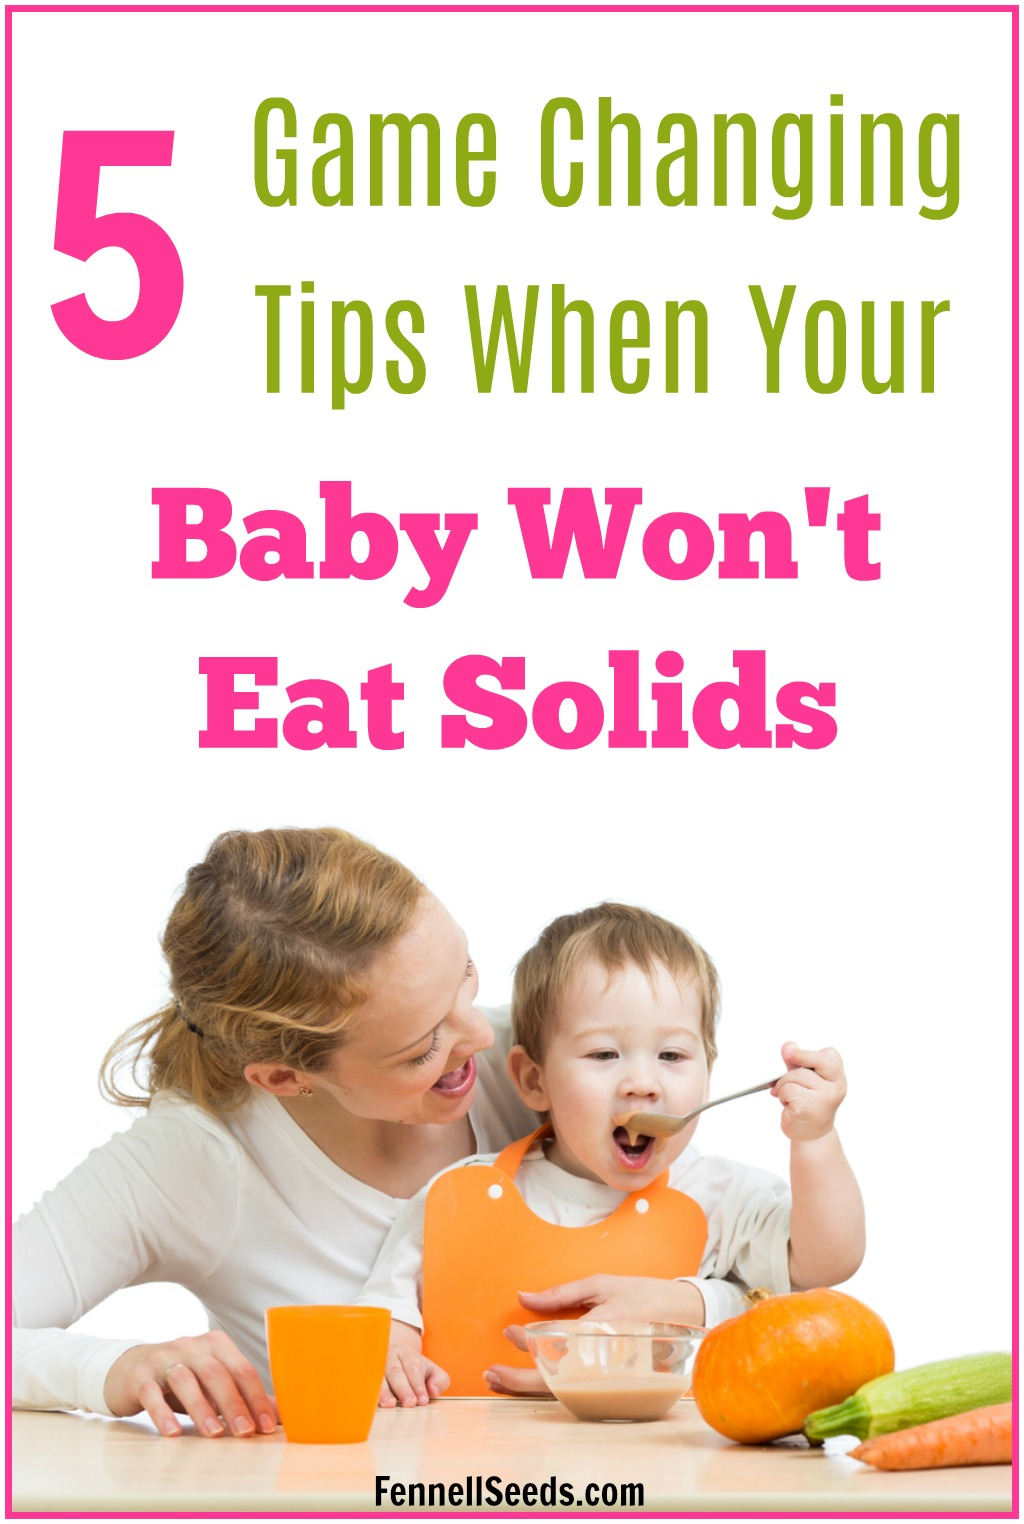 baby won't eat solids | refusing solids | how to get baby to eat solids | how to get your baby to try new foods | how to get a baby to eat | won't eat baby food